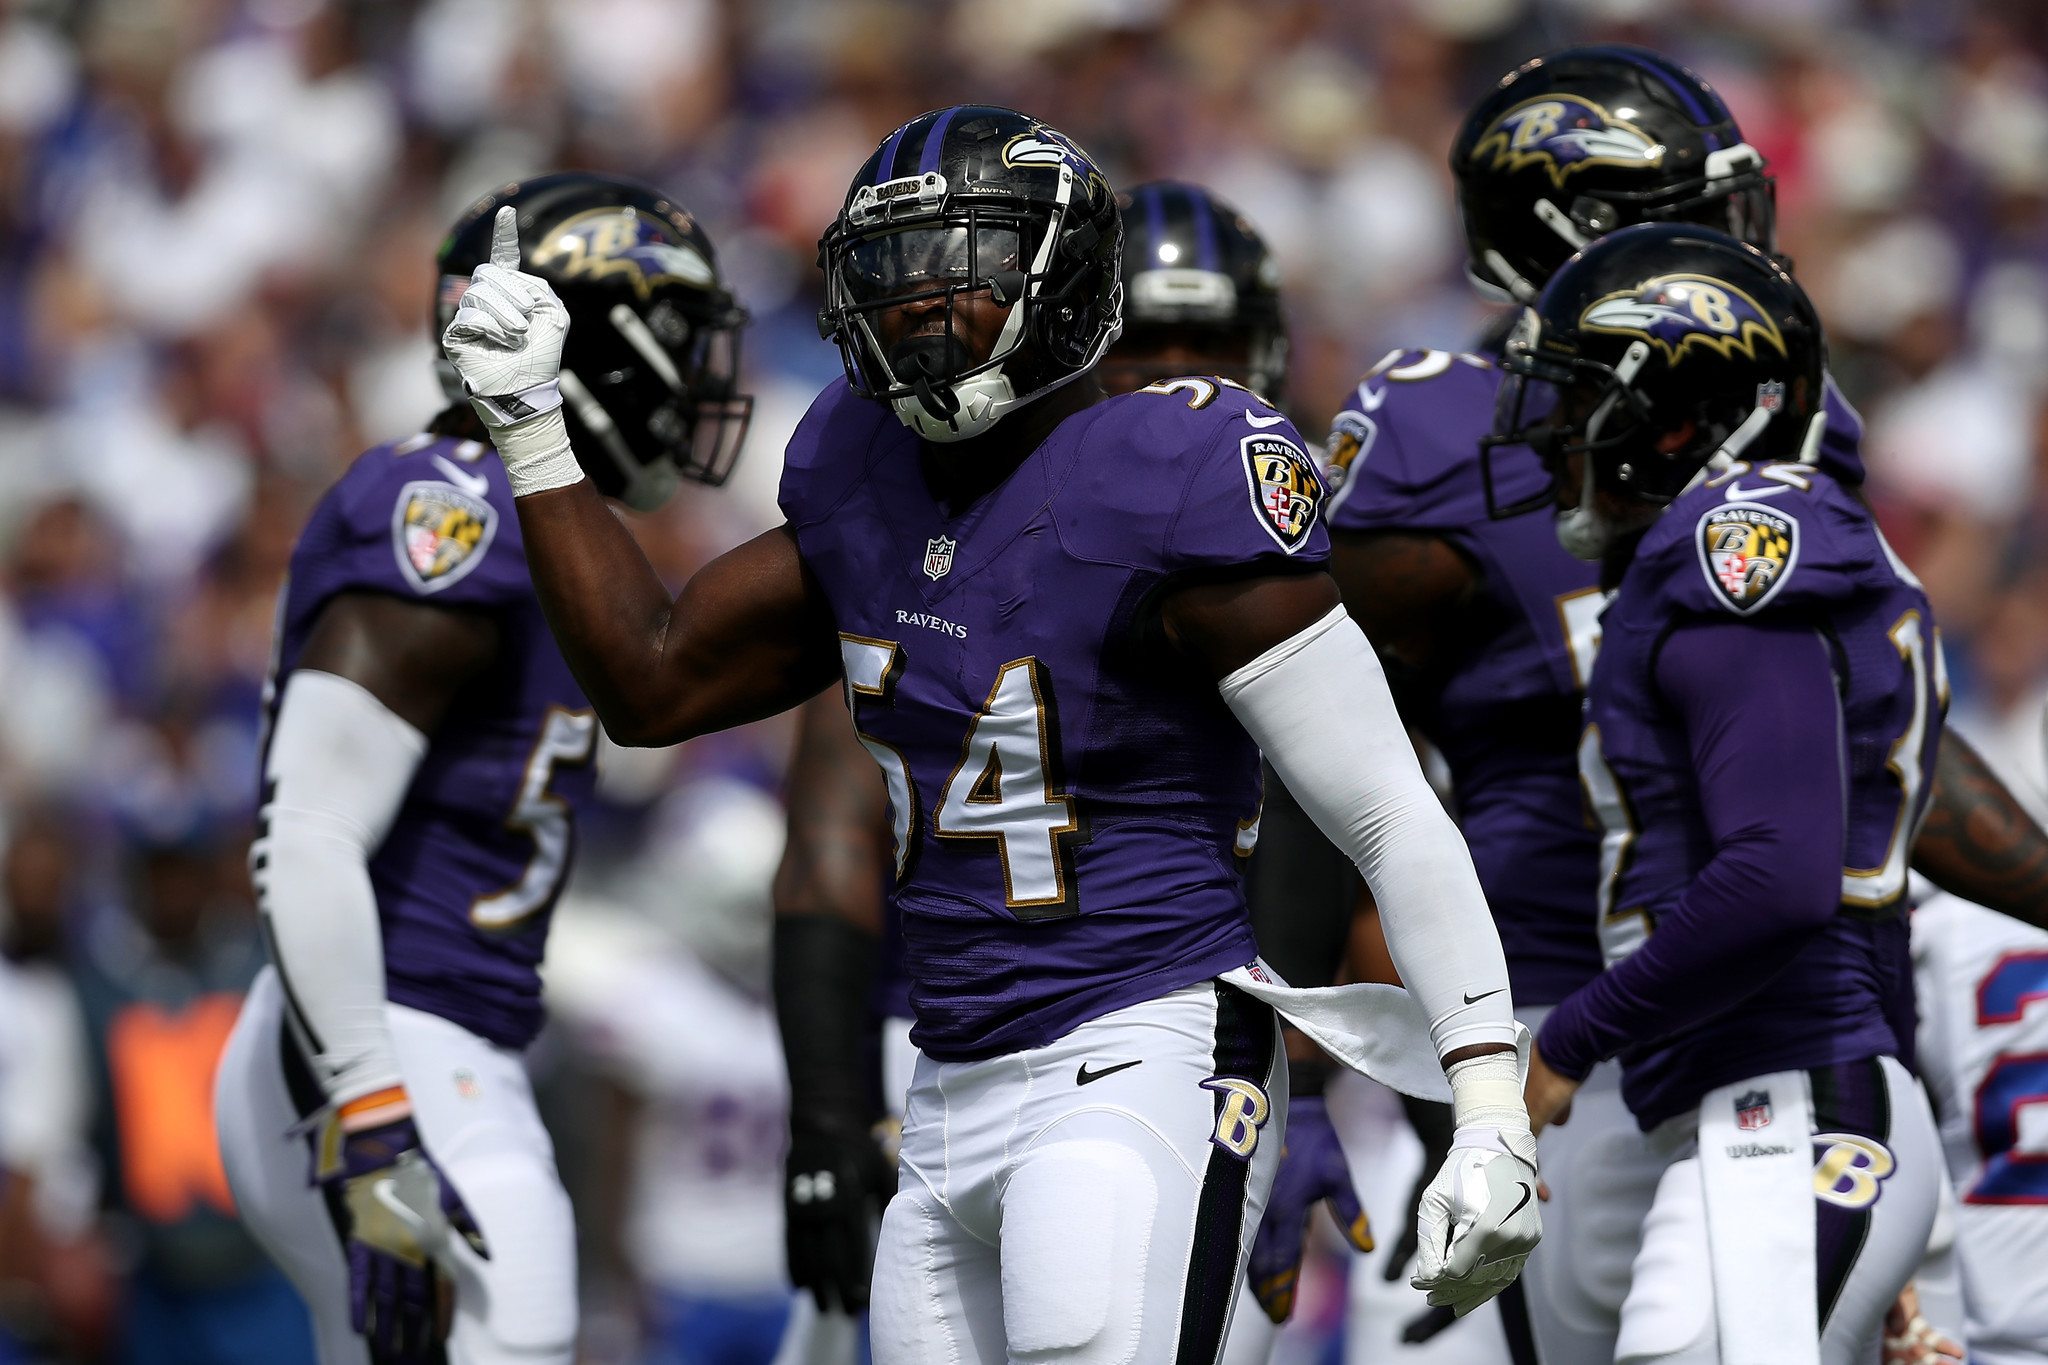 Bal-inside-linebacker-zachary-orr-is-looking-to-build-on-first-career-start-for-ravens-20160915